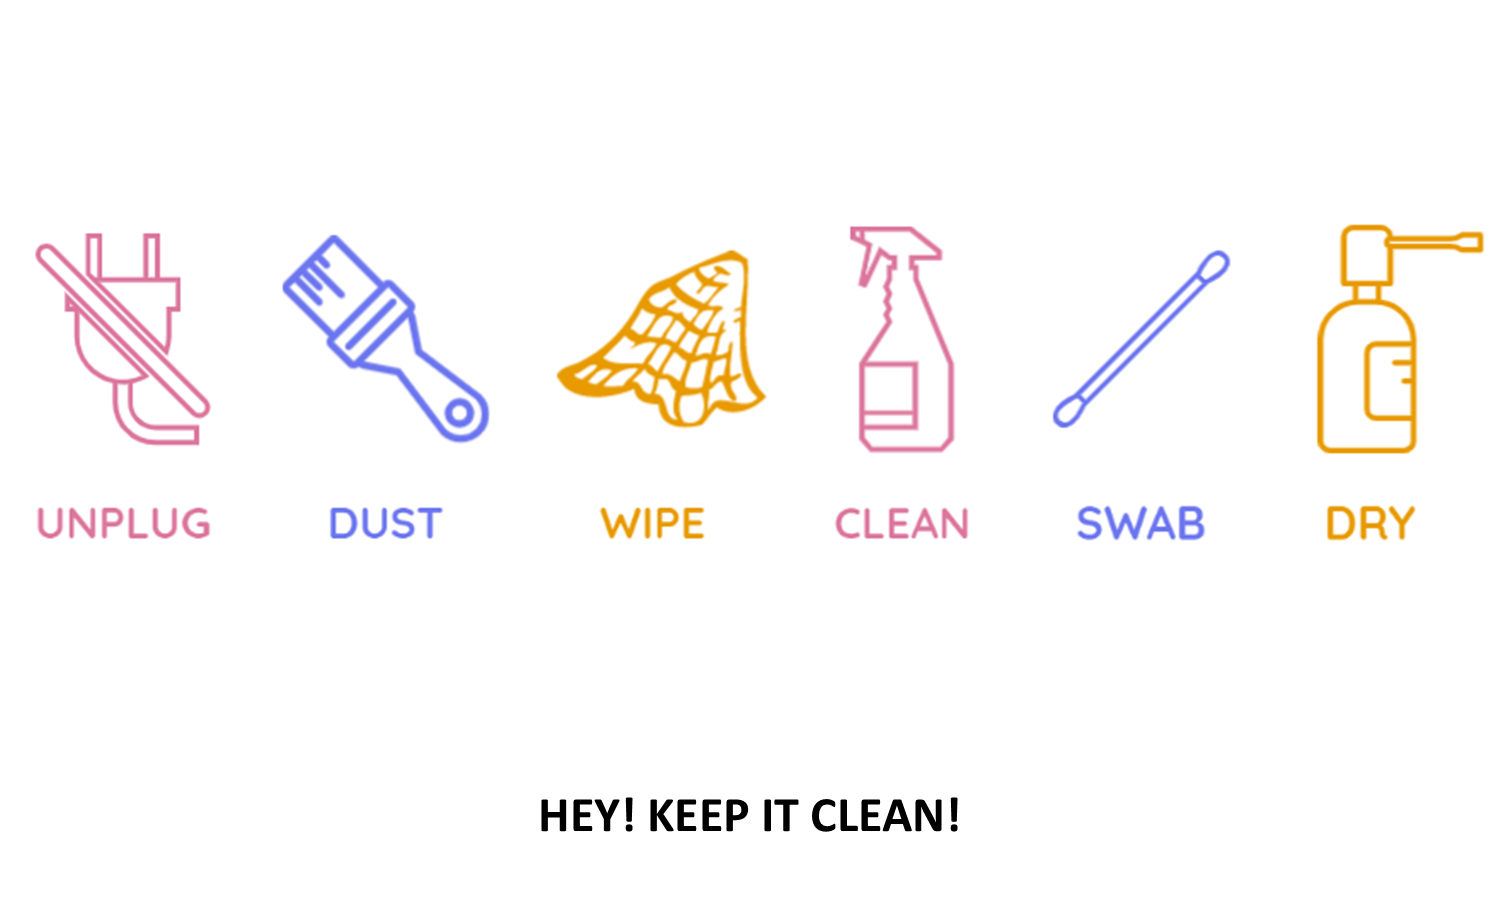 Hey! Keep it CLEAN!